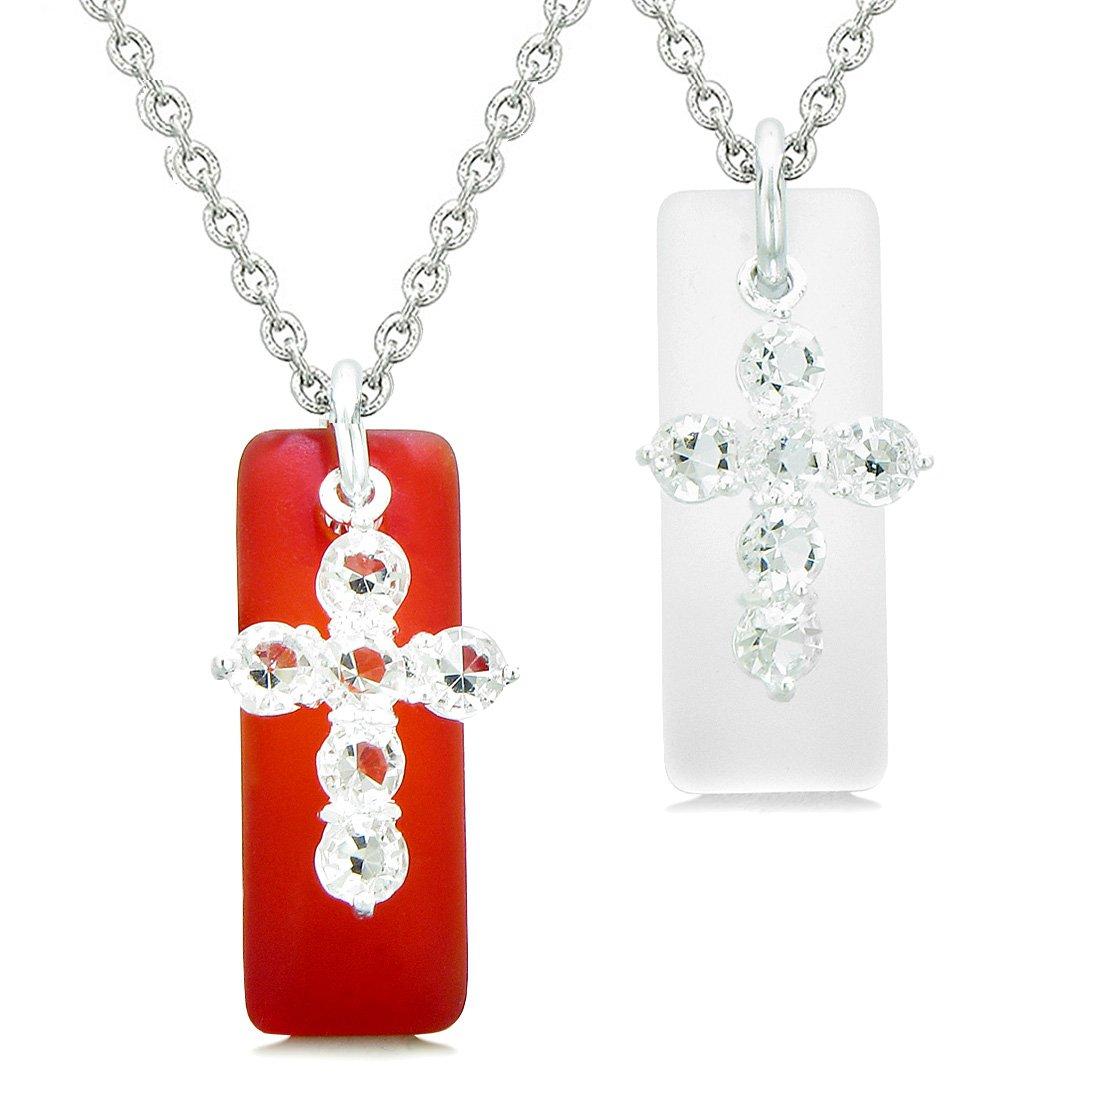 Sea Glass Royal Red and Mist White Tags Crystal Cross Love Couples BFF Set Protection Amulet Necklaces